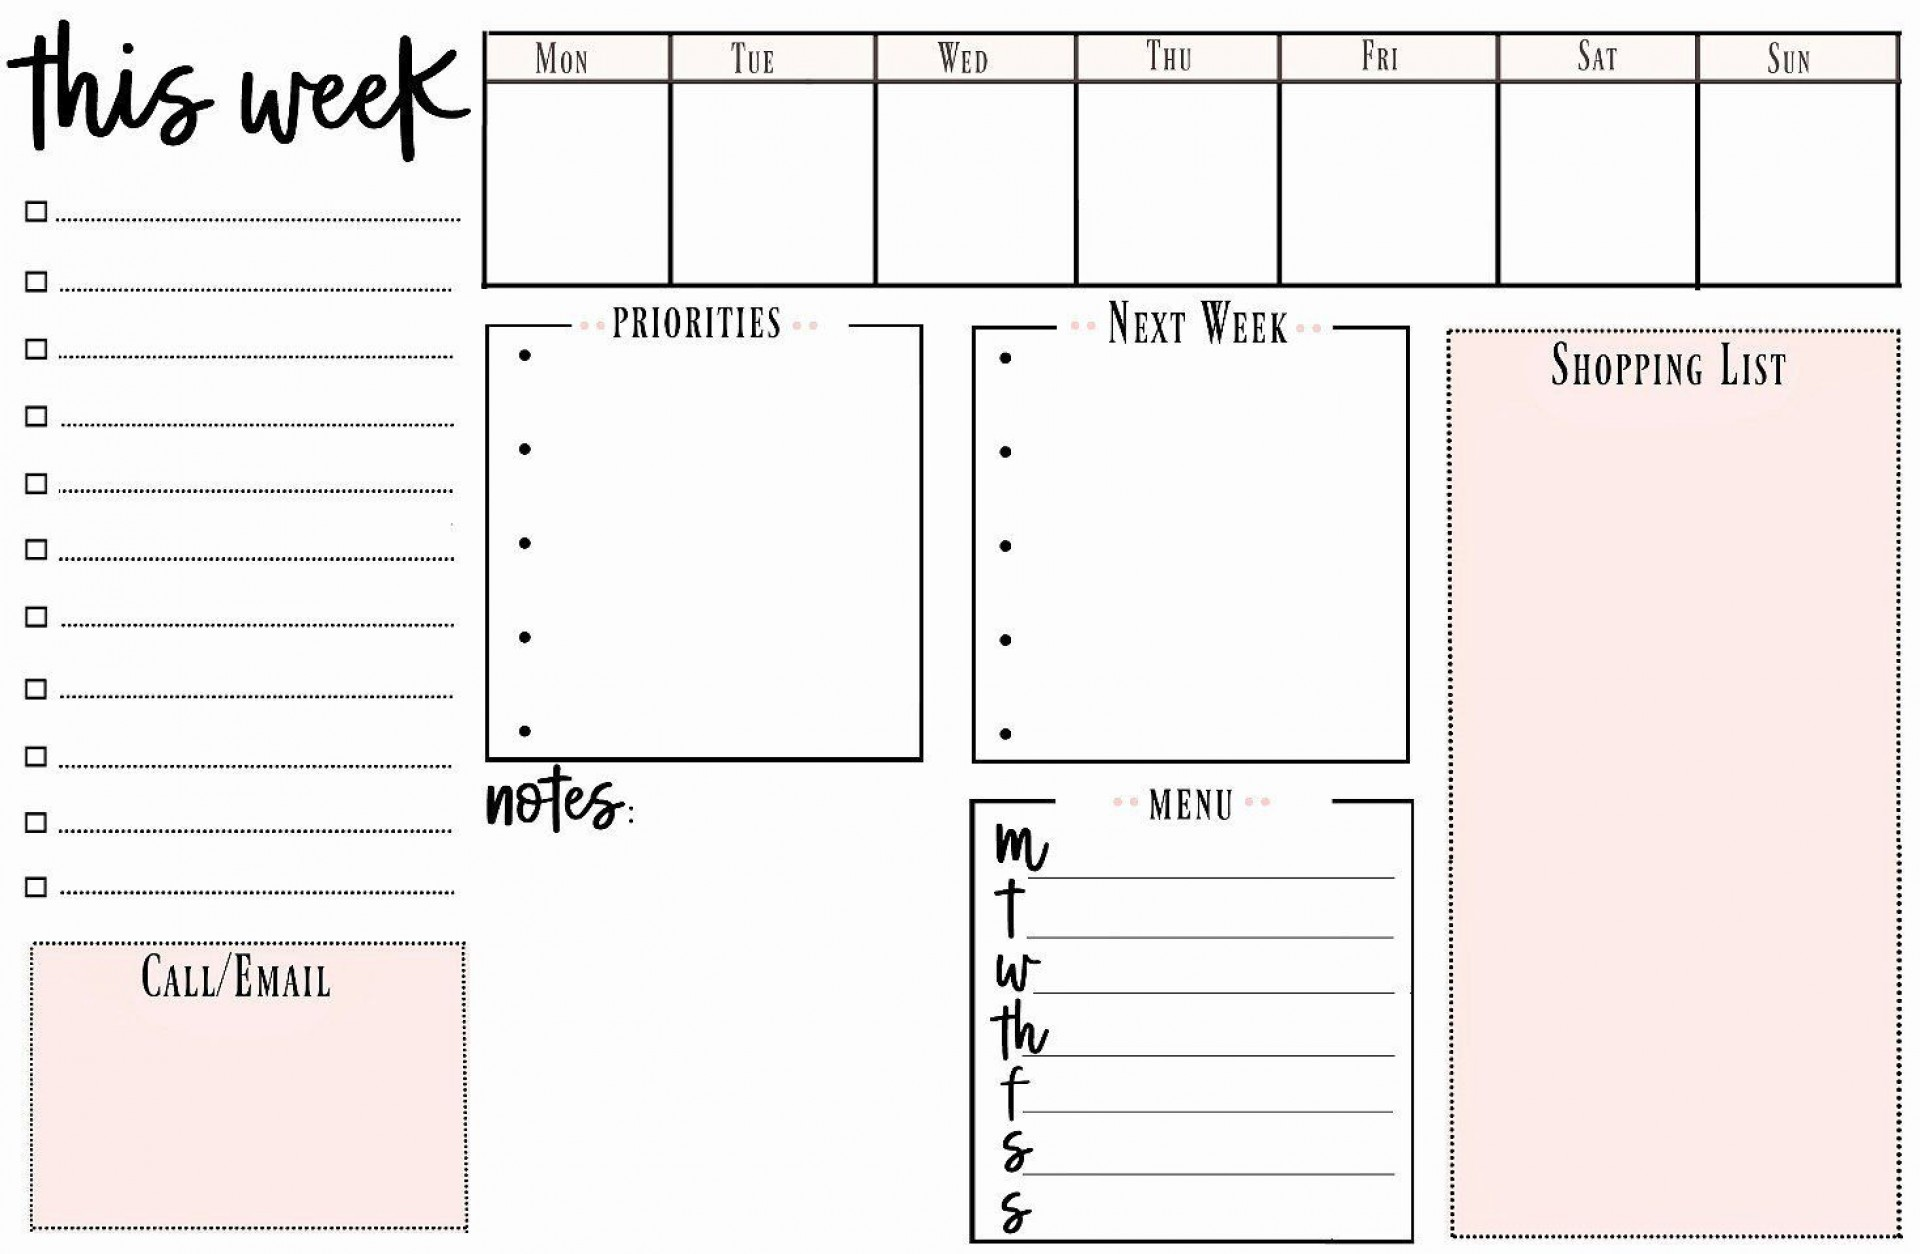 002 Stirring Weekly Todo List Template Picture  To Do Pinterest Task Excel Daily Pdf1920